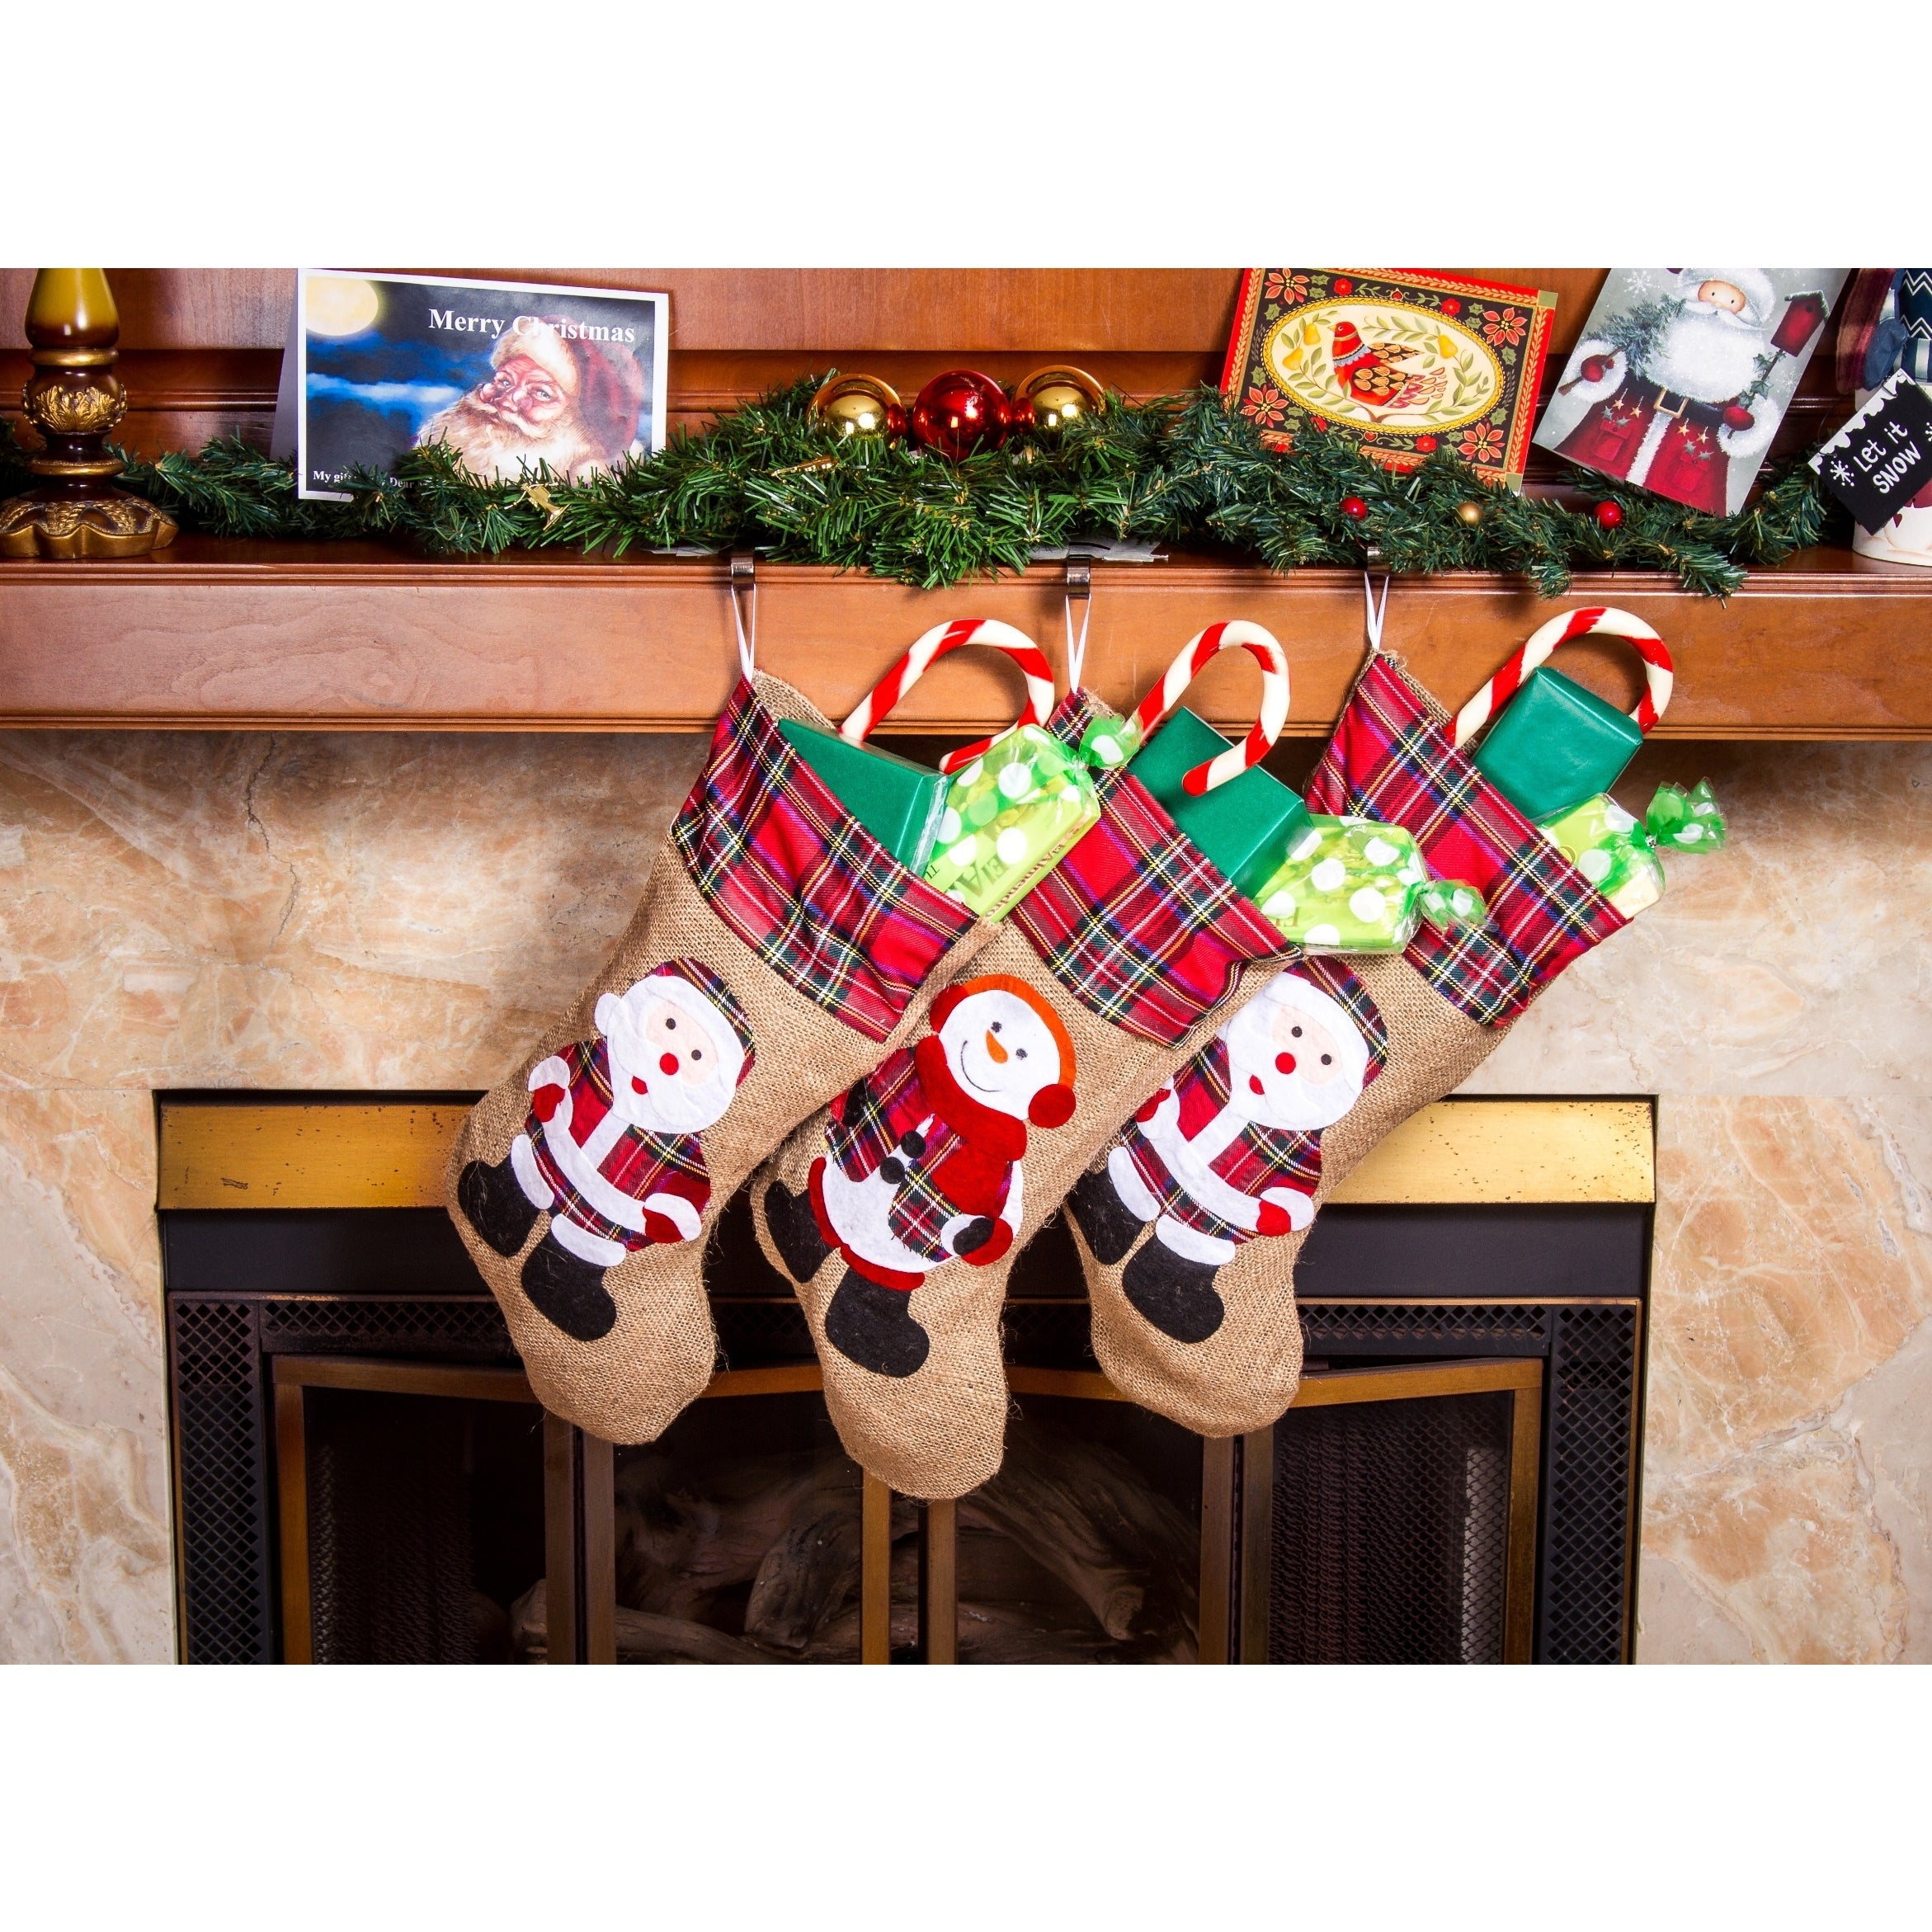 Shop rustic christmas stockings 19 inch santa claus burlap xmas stockings 3 pack free shipping on orders over 45 overstock com 13312042